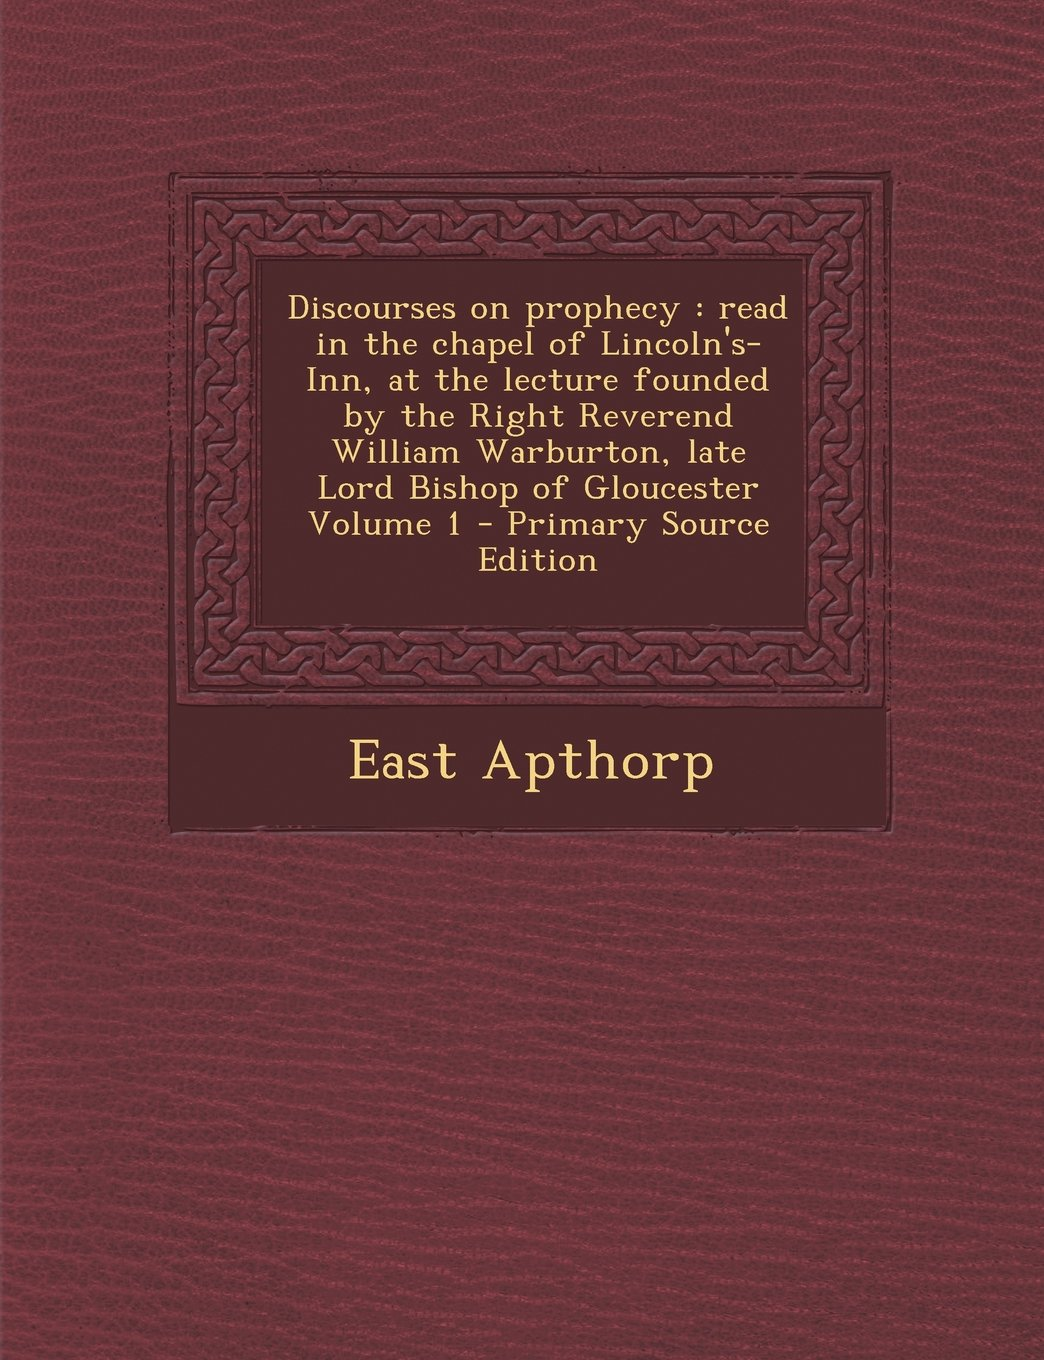 Discourses on Prophecy: Read in the Chapel of Lincoln's-Inn, at the Lecture Founded by the Right Reverend William Warburton, Late Lord Bishop pdf epub